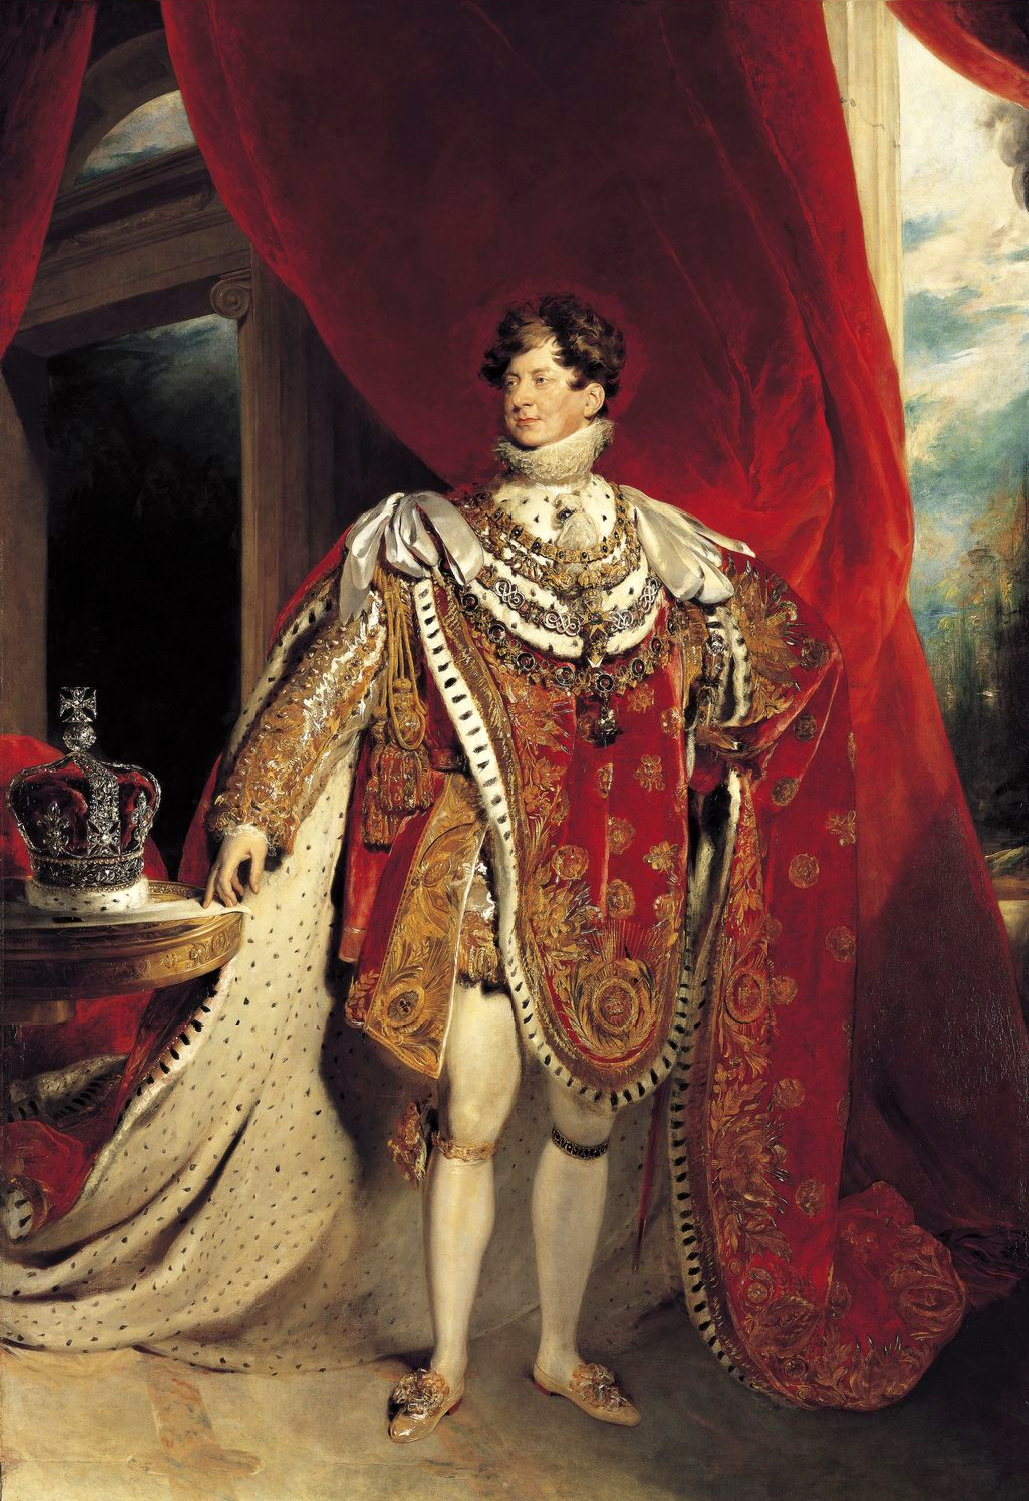 https://upload.wikimedia.org/wikipedia/commons/e/ef/George_IV_1821_color.jpg